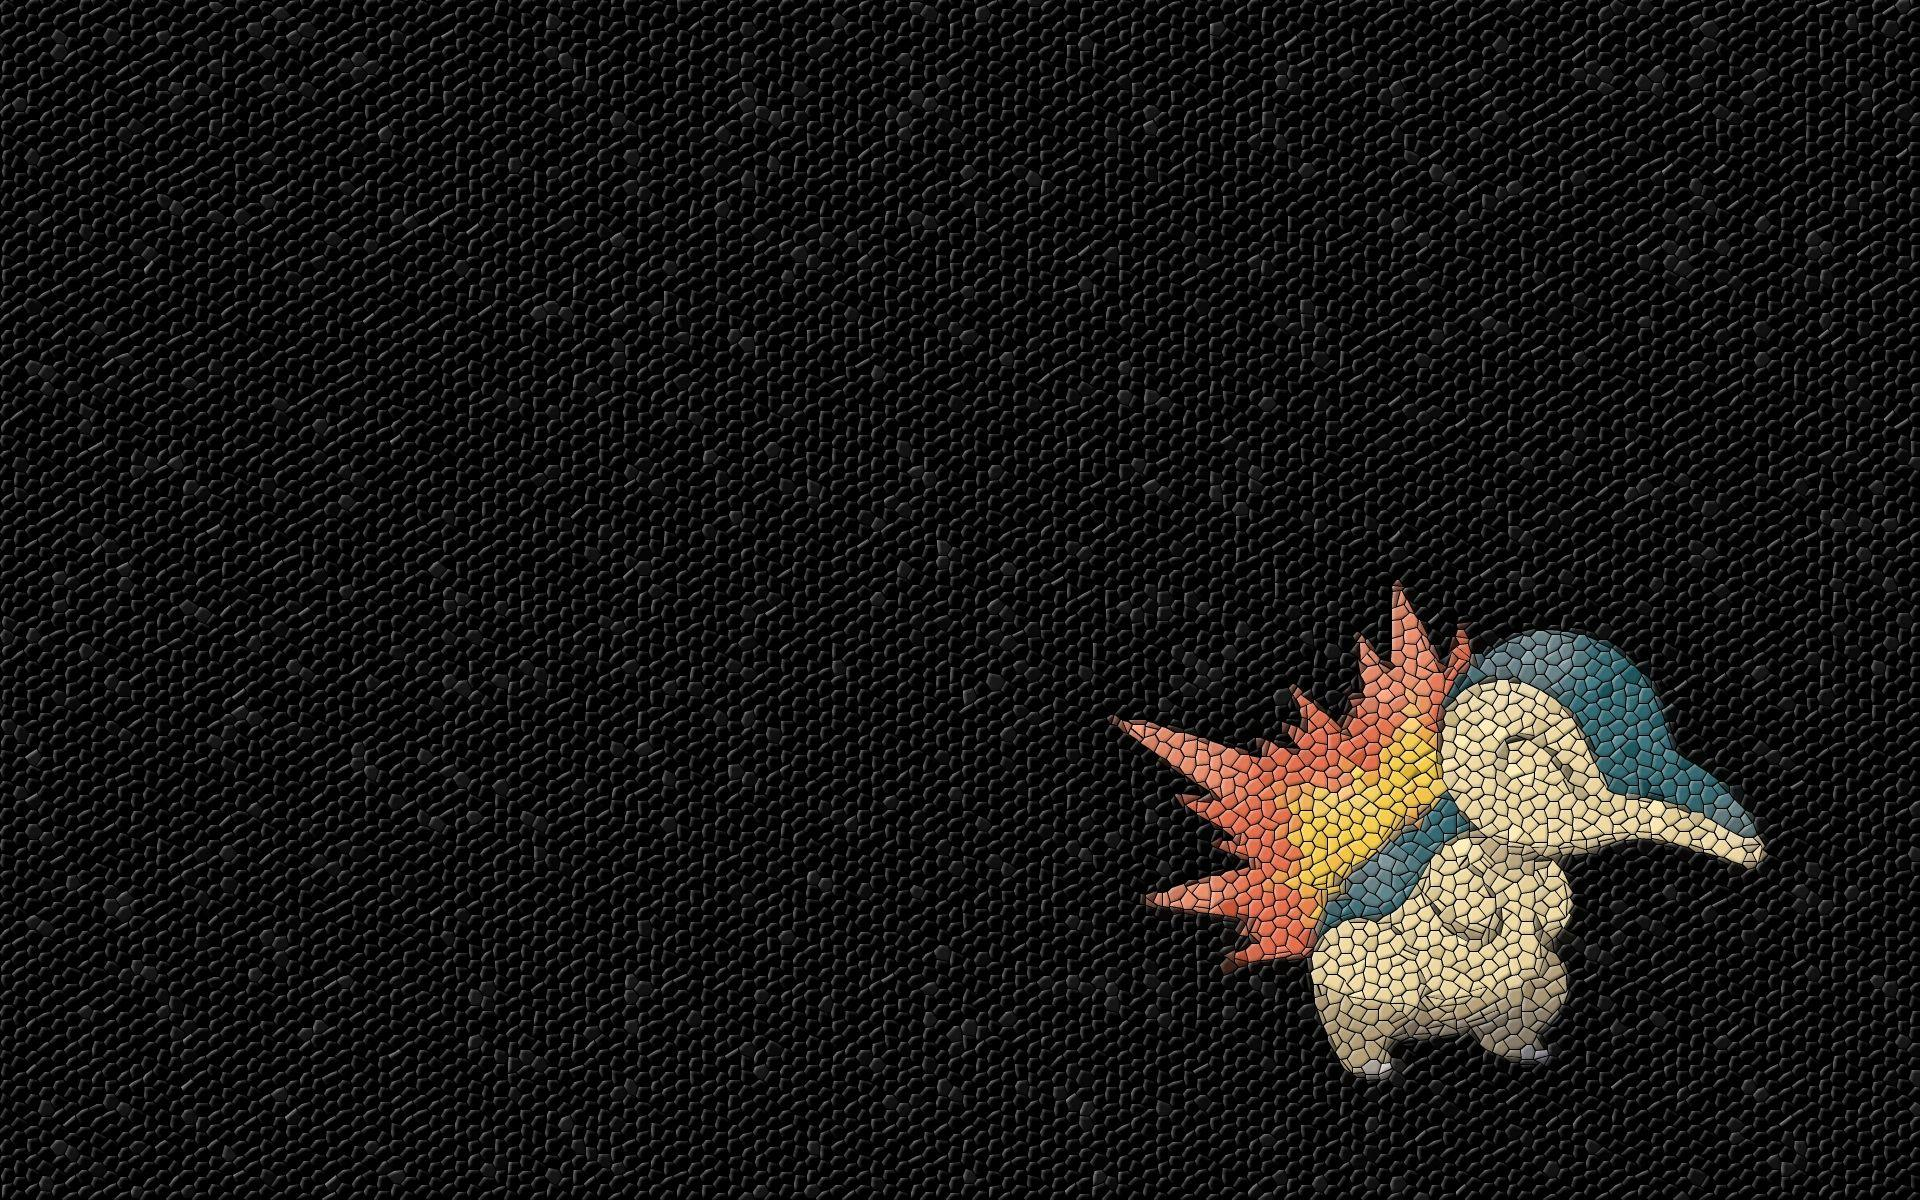 pokemon mosaic cyndaquil 1920x1200 wallpapers High Quality